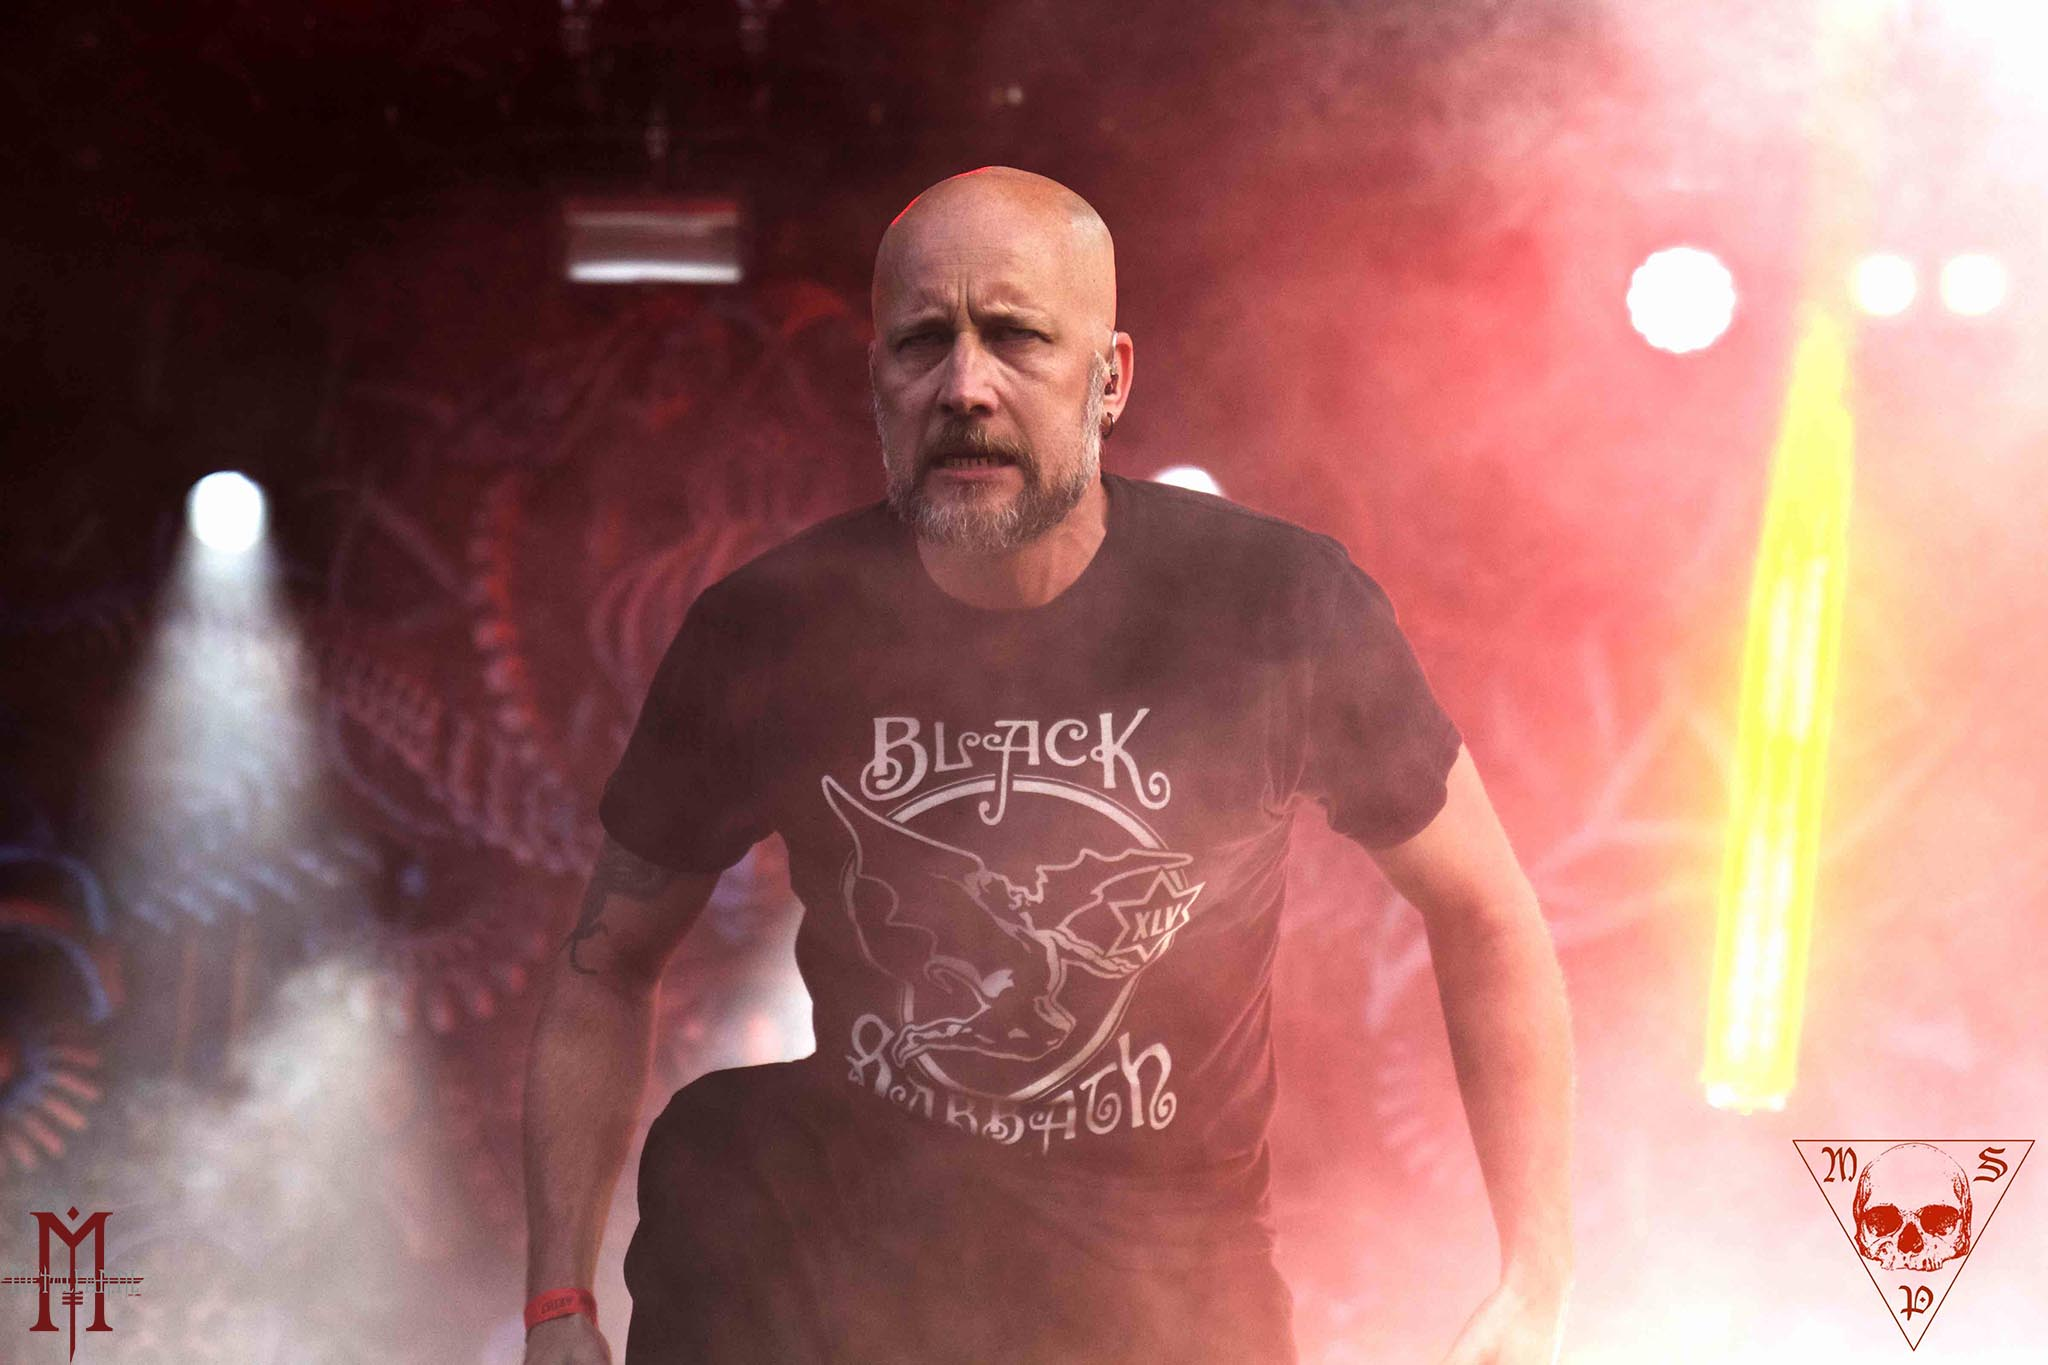 Meshuggah @ Into The Grave 2019